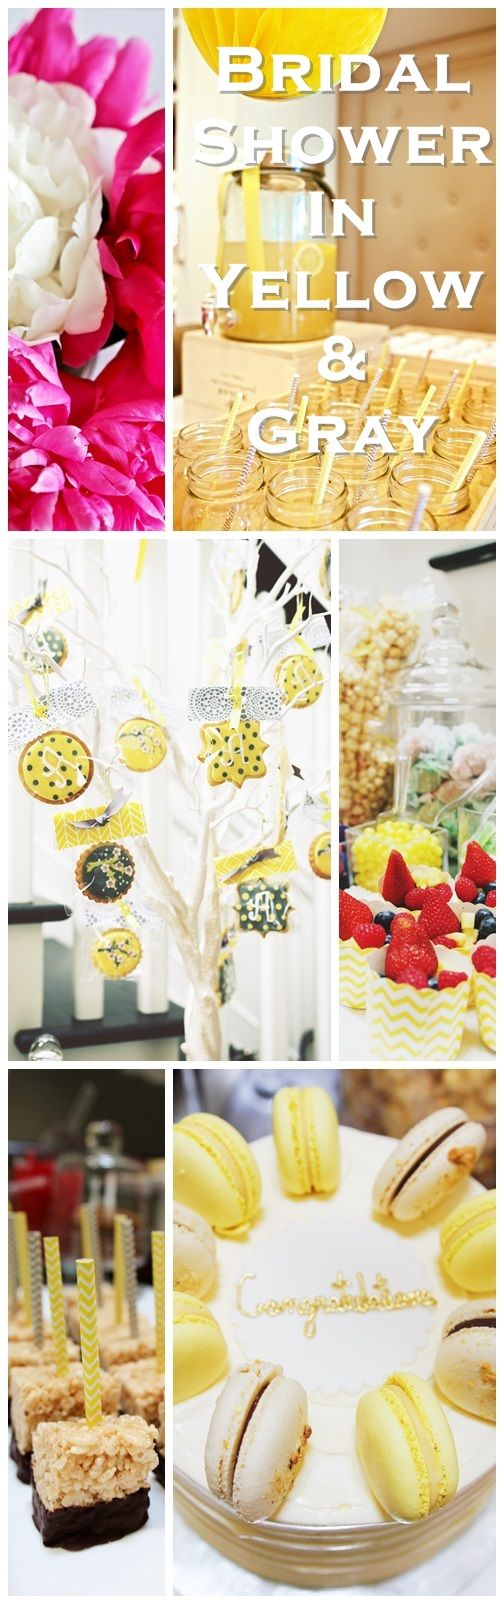 Bridal Shower in Yellow and Gray. Shower and party ideas. Featuring a beautiful sweets table and candy bar, tissue poms, peonies, DIY rice crispy treats and royal icing cookies.